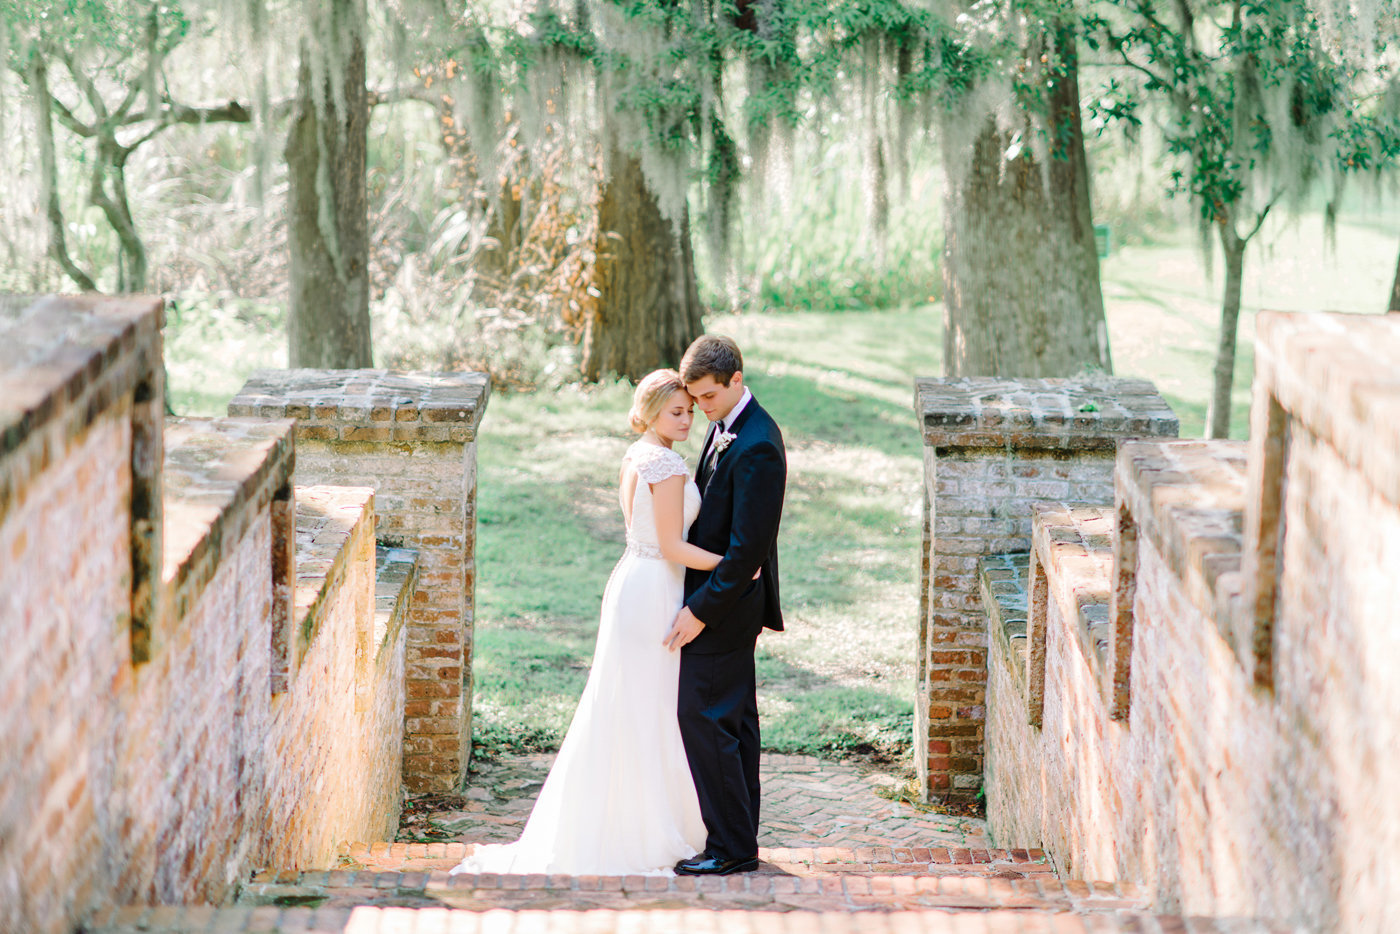 Brook Green Garden Weddings in South Carolina